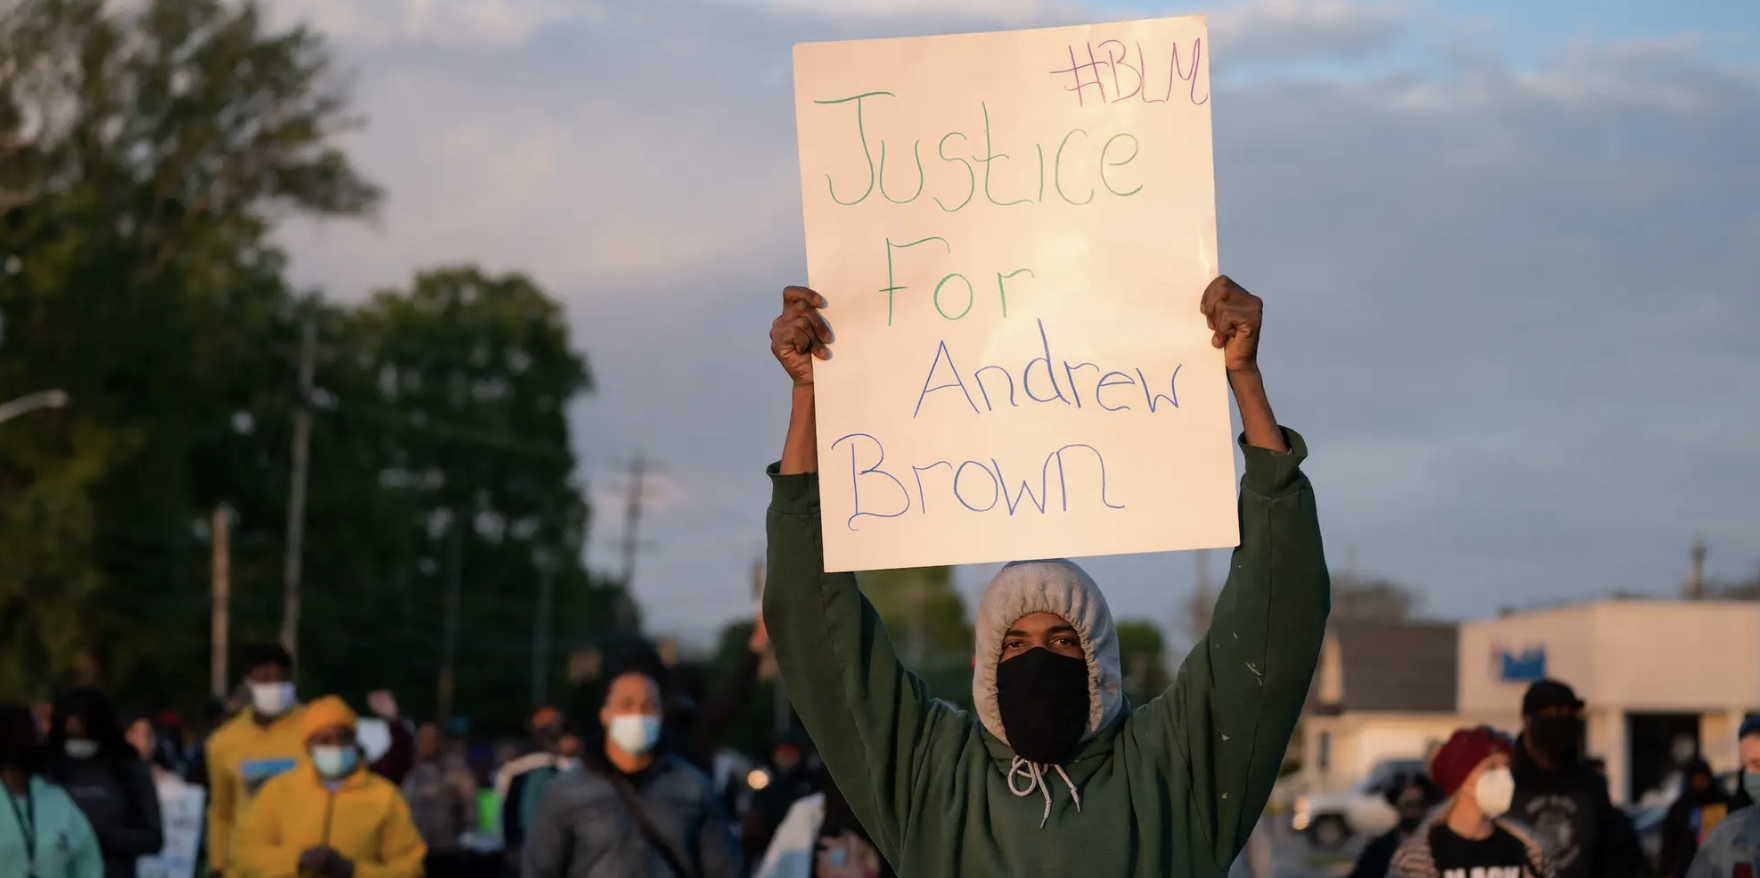 justice for Andrew Brown Jr.